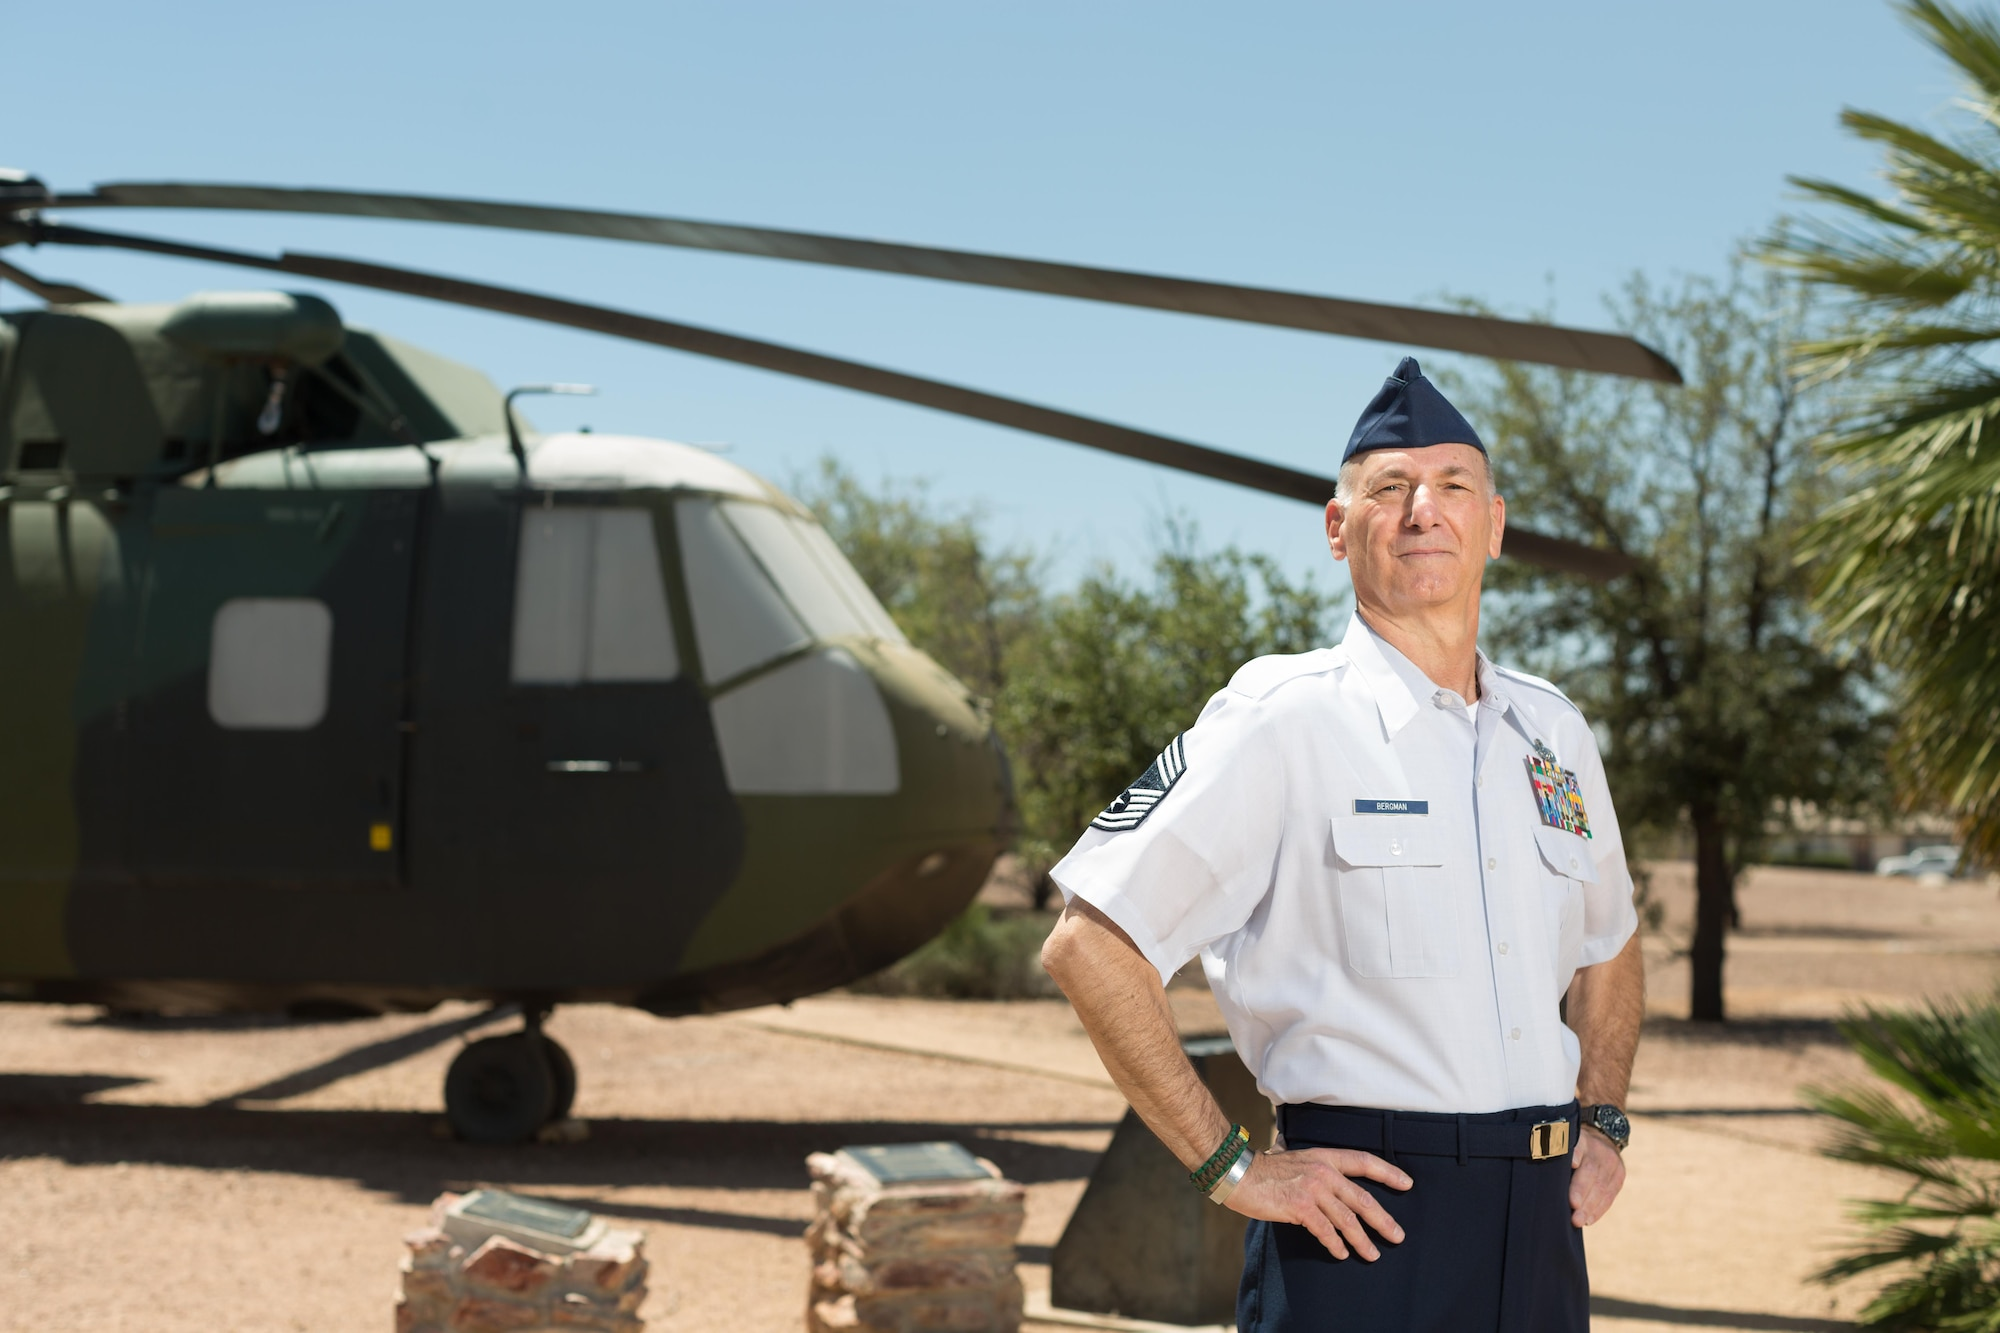 """Retired Chief Master Sgt. Craig Bergman stands in front of the HH-3 """"Jolly Green Giant"""" at Davis-Monthan Air Force Base, Ariz., May 19, 2016. Bergman retired as the maintenance superintendent for the 943rd Maintenance Squadron in 2007, having been one of five U.S. Air Force Reserve Airmen to establish the 71st Special Operations Squadron and bring the HH-3 here. His family's military legacy dates back to World War I. (U.S. Air Force photo by Tech. Sgt. Carolyn Herrick)"""